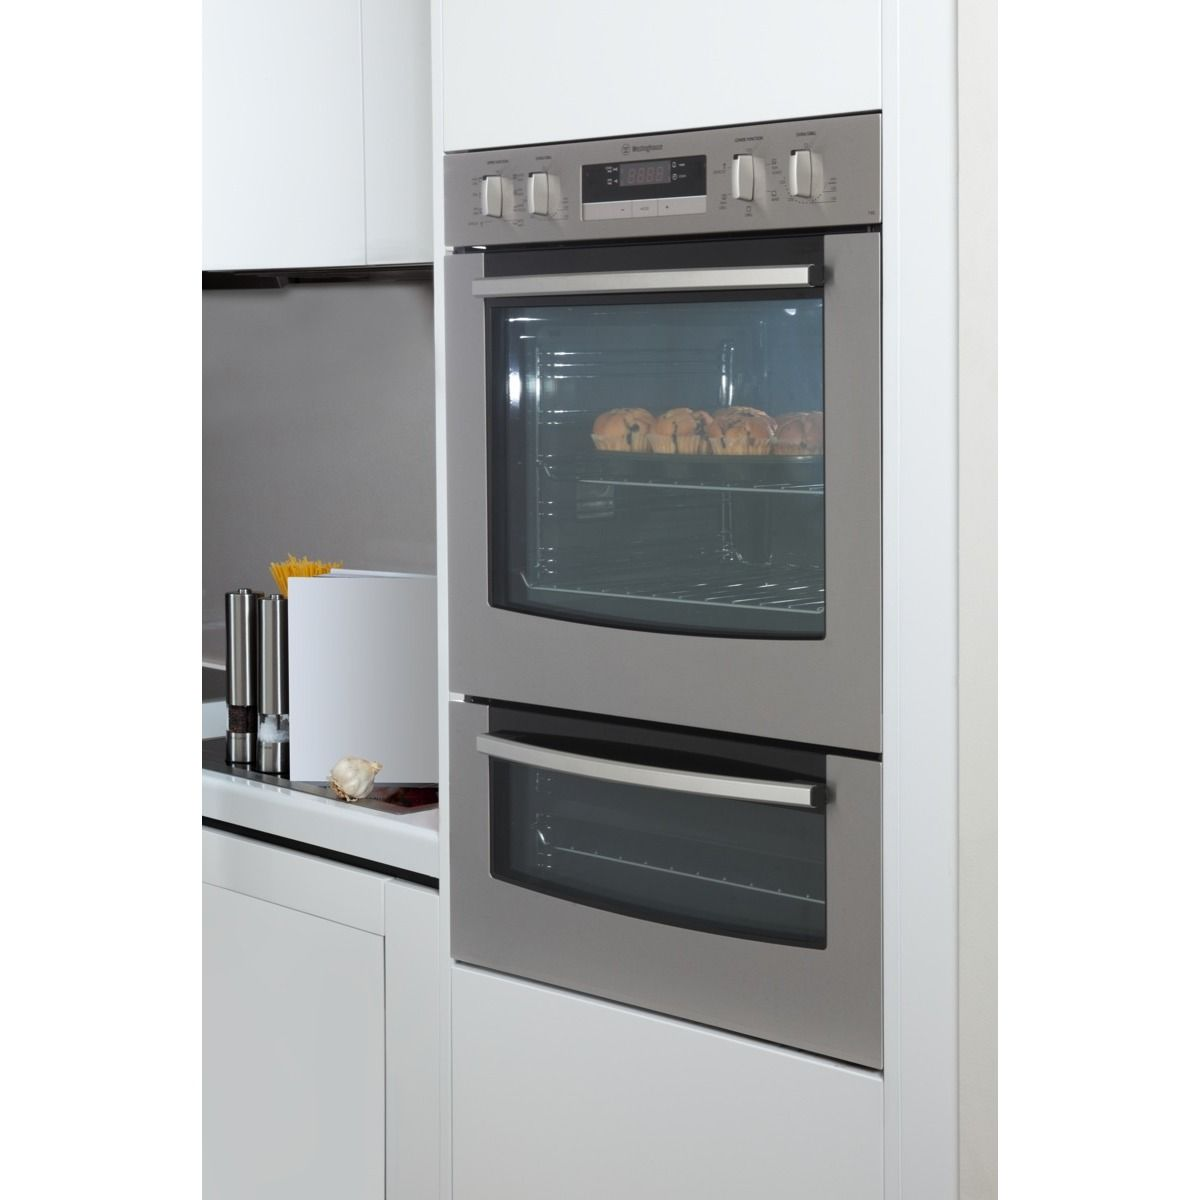 Check Out The Westinghouse 60cm Double Oven At The Good Guys